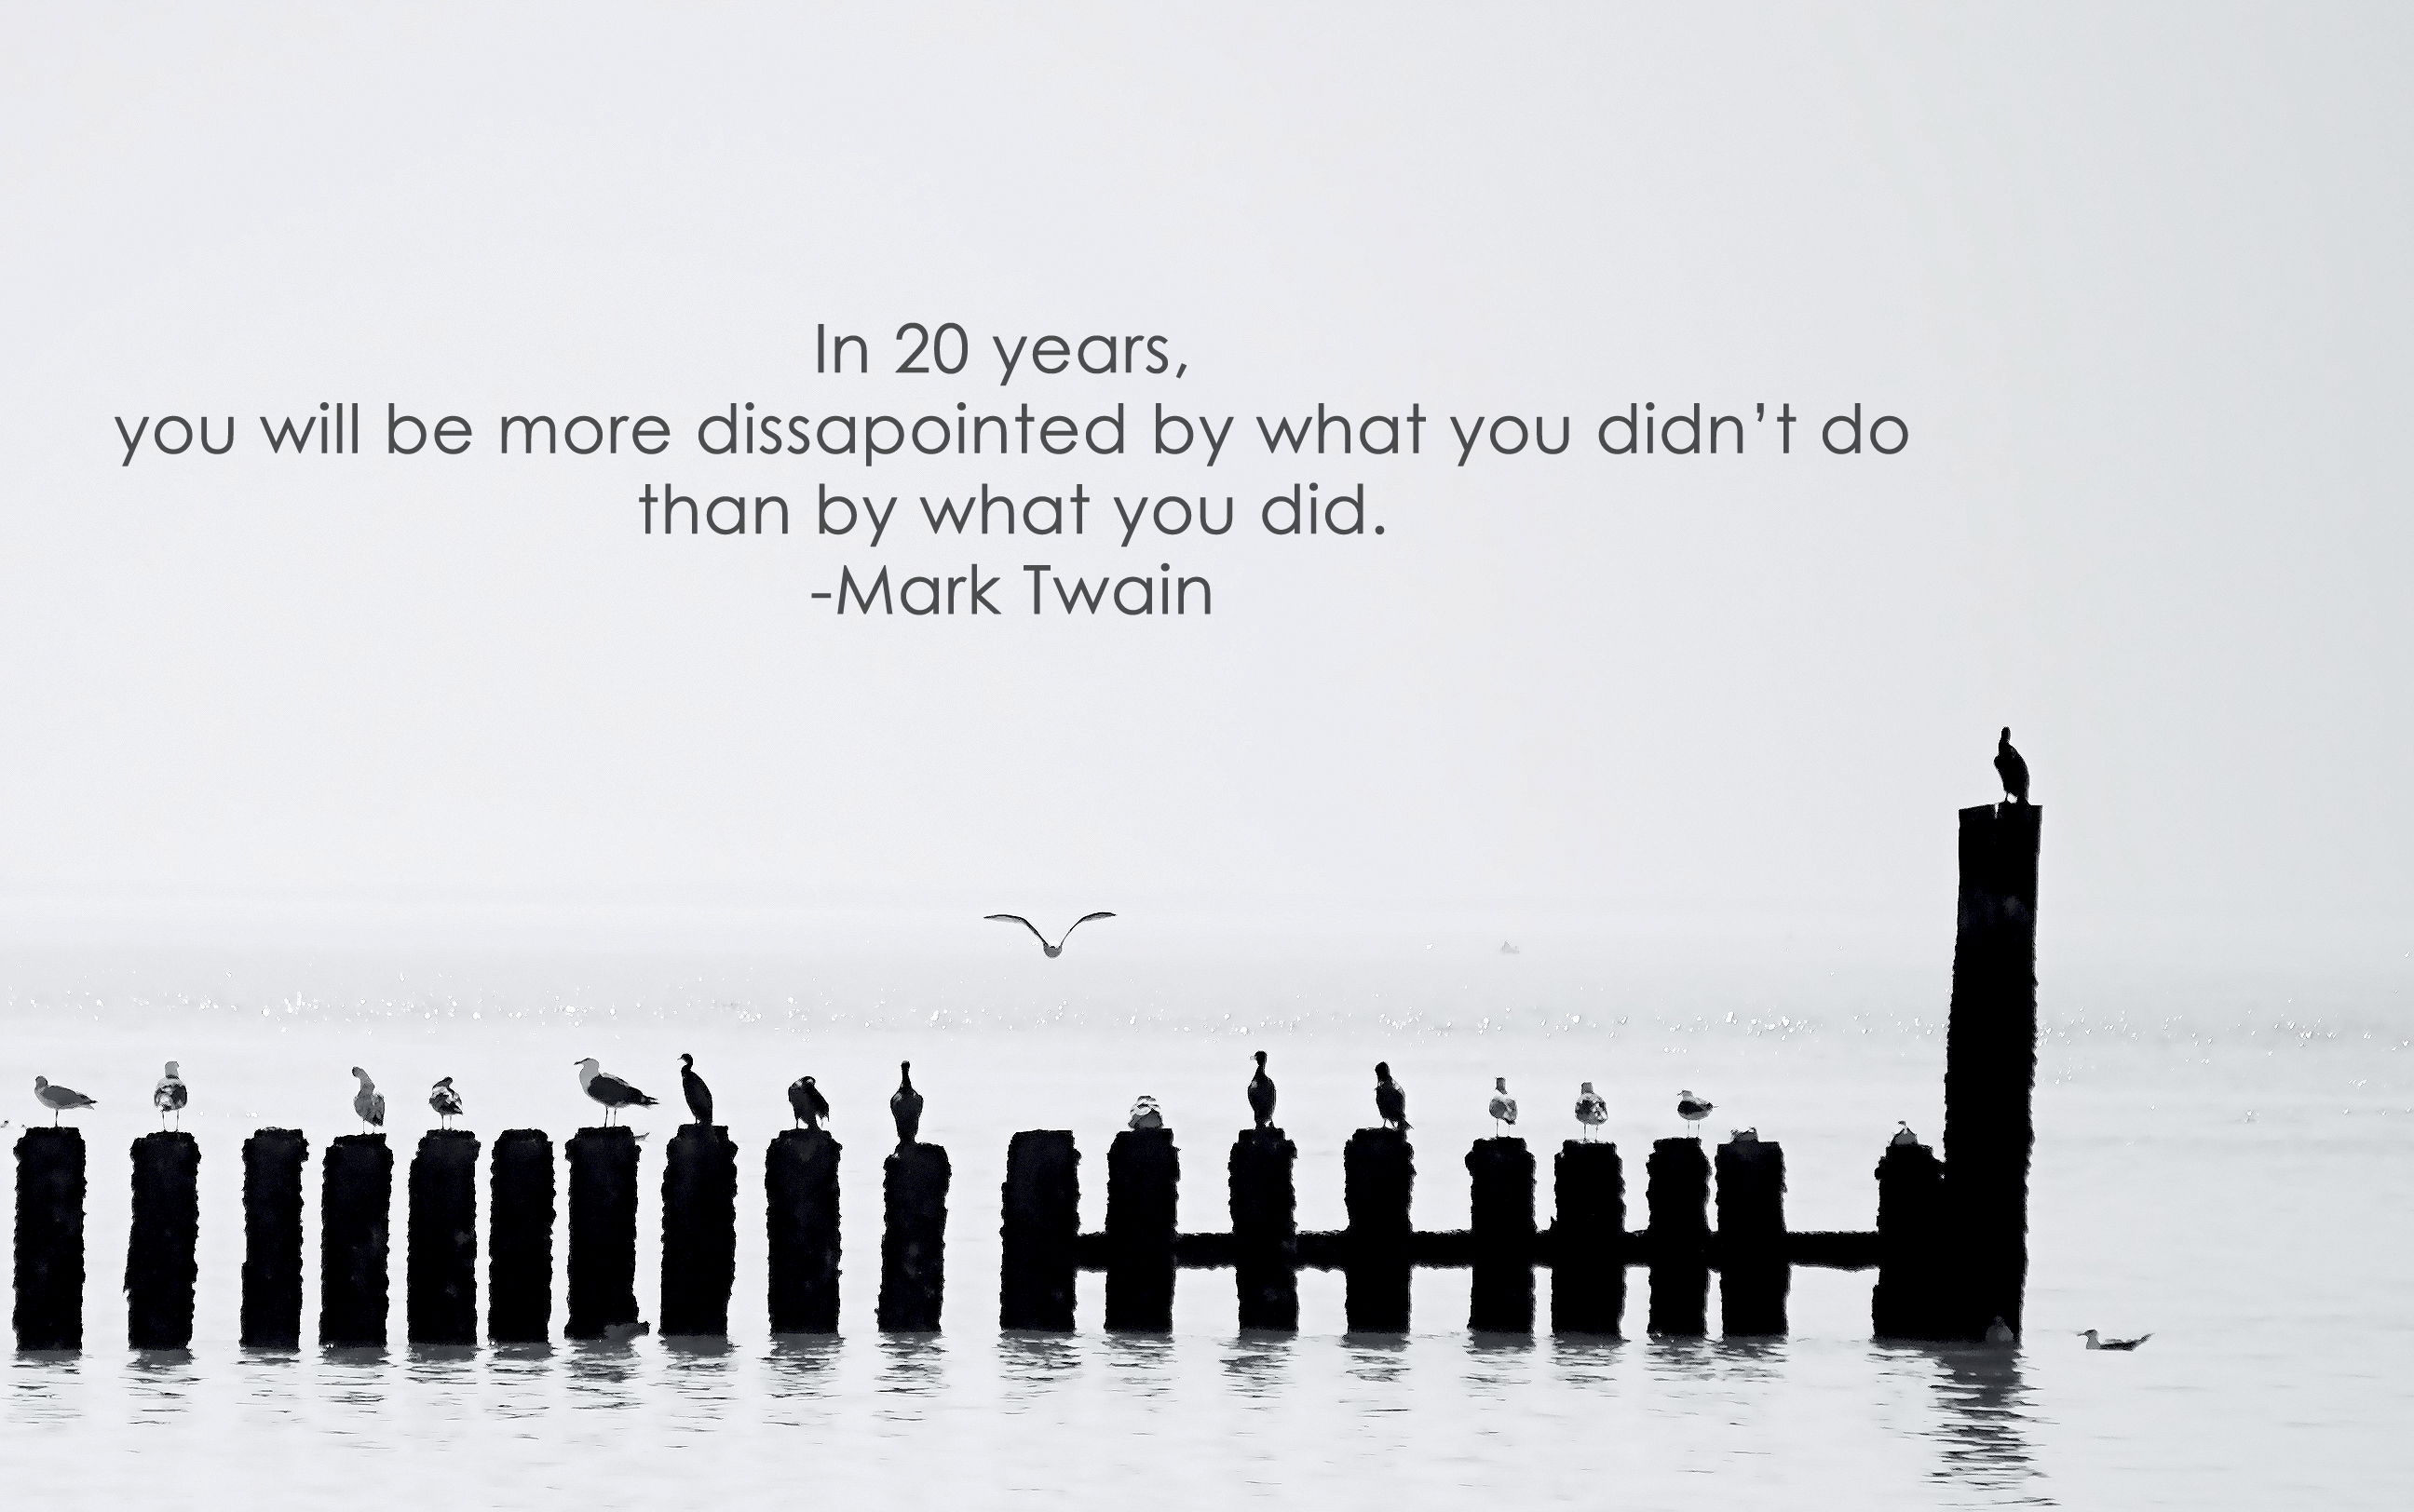 In 20 Years. You Will Be More Dissapointed by What You Didn't Do Than by What You Did ~ Love Quote